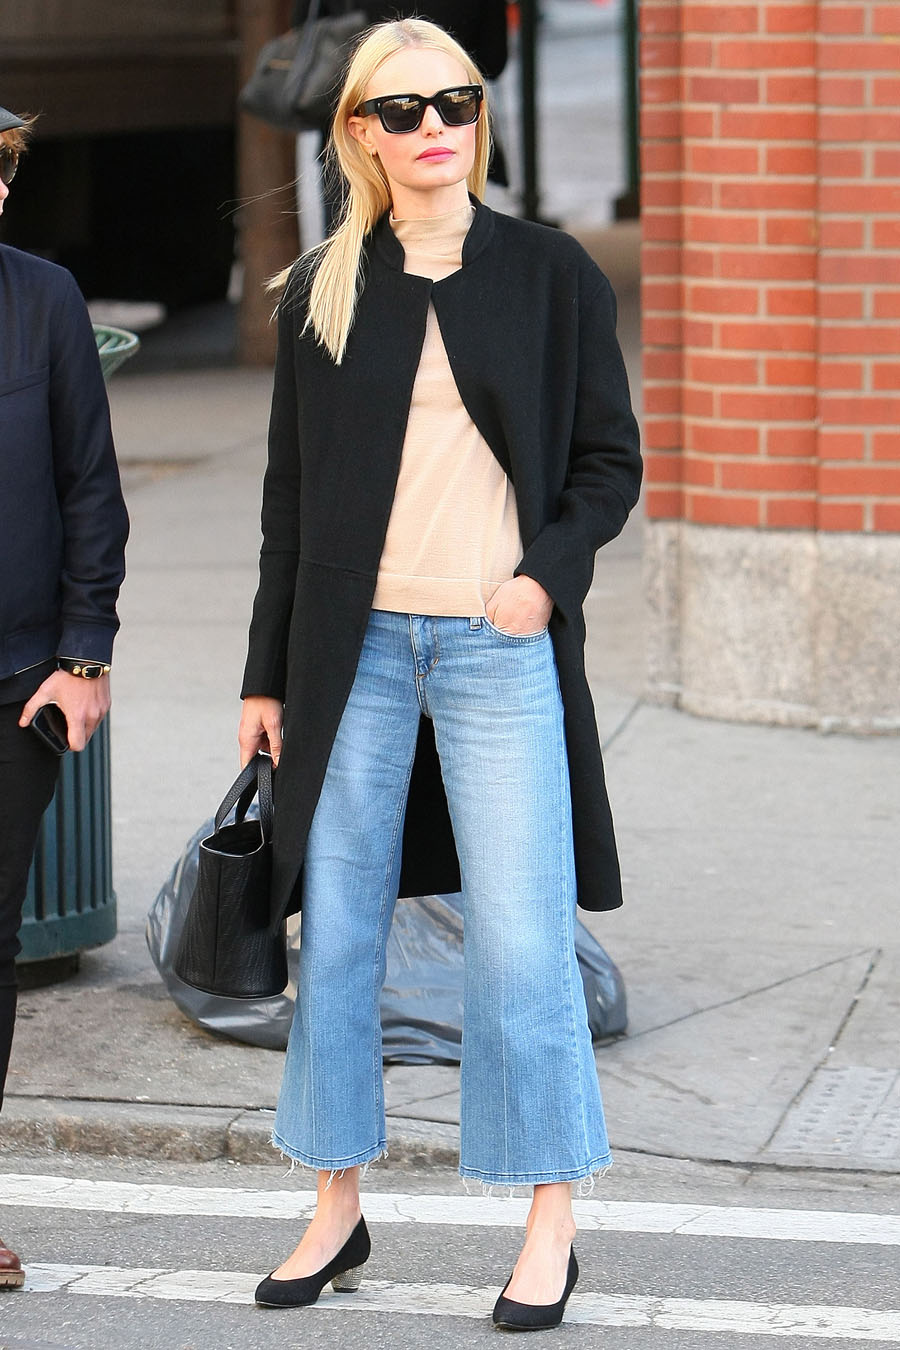 06 Apr 2016, New York State, USA --- EXCLUSIVE: Kate Bosworth was seen carrying a Meli Melo handbag while out with a friend in Soho New York on Wednesday afternoon.The two were then seen getting into a yellow cab. Pictured: Kate Bosworth --- Image by © Splash News/Splash News/Corbis